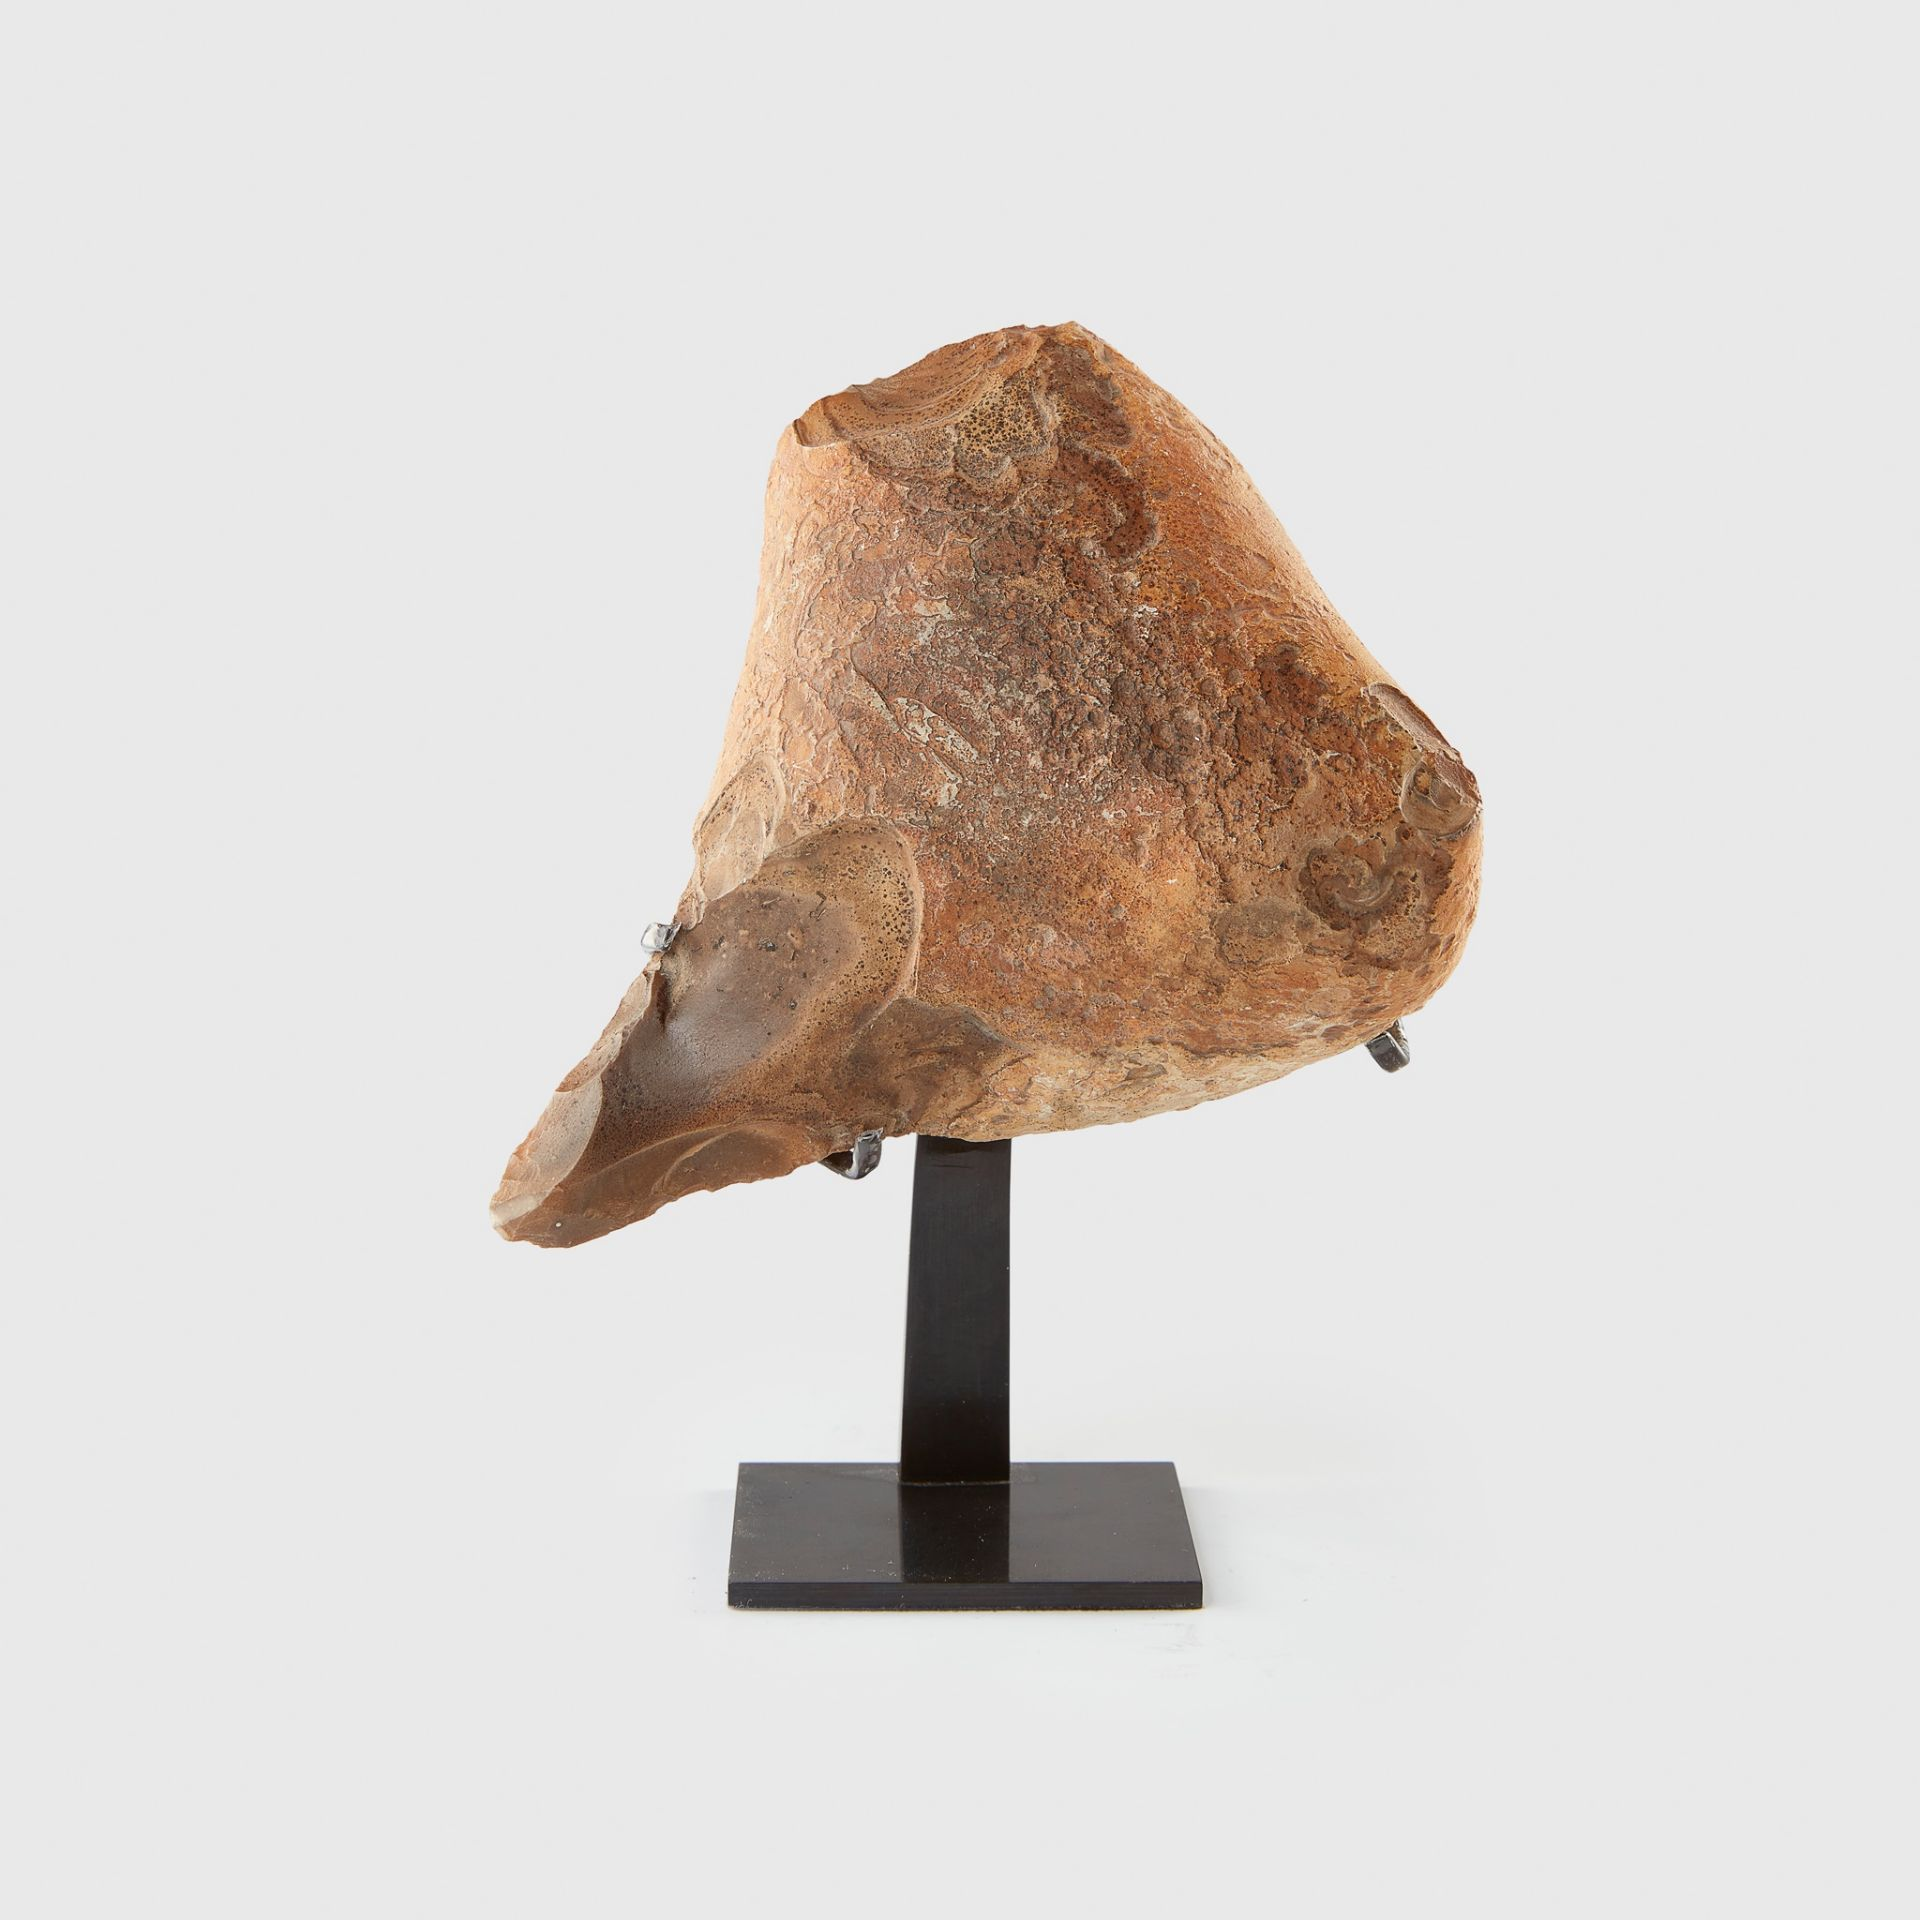 PUBLISHED 1914 PREDYNASTIC EGYPTIAN FLINT HAND AXE EGYPT, LATE MESOLITHIC, c. 7,000 - 6,000 B.C.